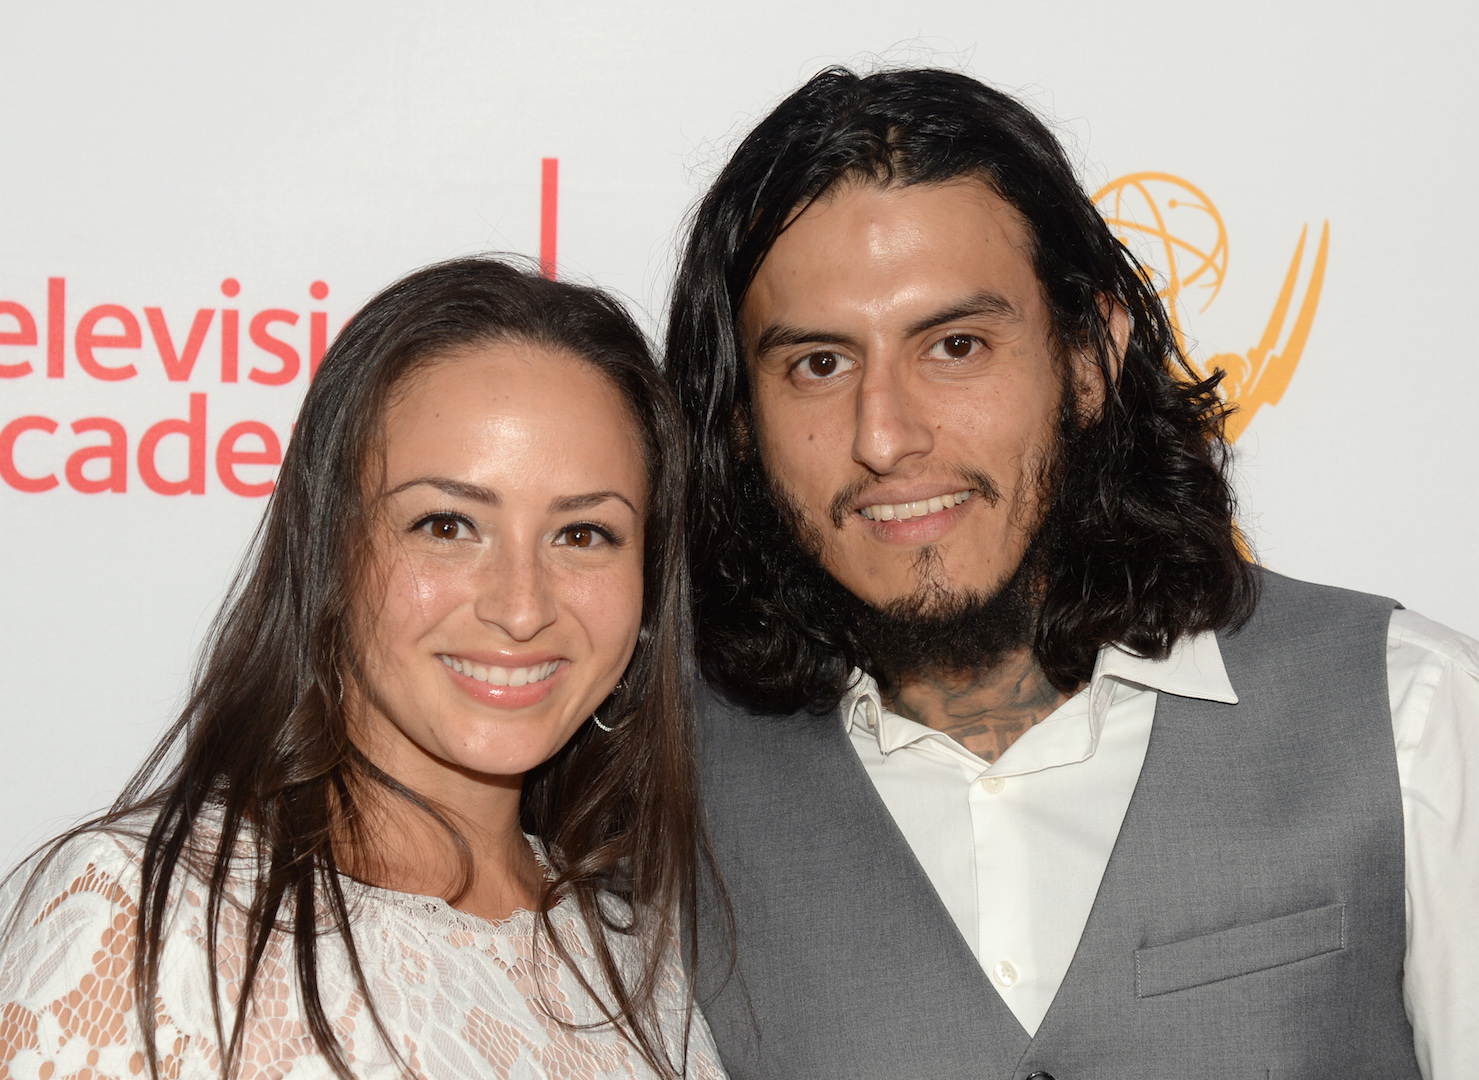 Janiece Sarduy, left, and Richard Cabral seen at the Television Academy's 67th Emmy Awards Dynamic and Diverse Nominee Reception at the Montage Beverly Hills on Thursday, Aug. 27, 2015, in Beverly Hills, Calif. (Photo by Phil Mccarten/Invision for the Television Academy/AP Images)